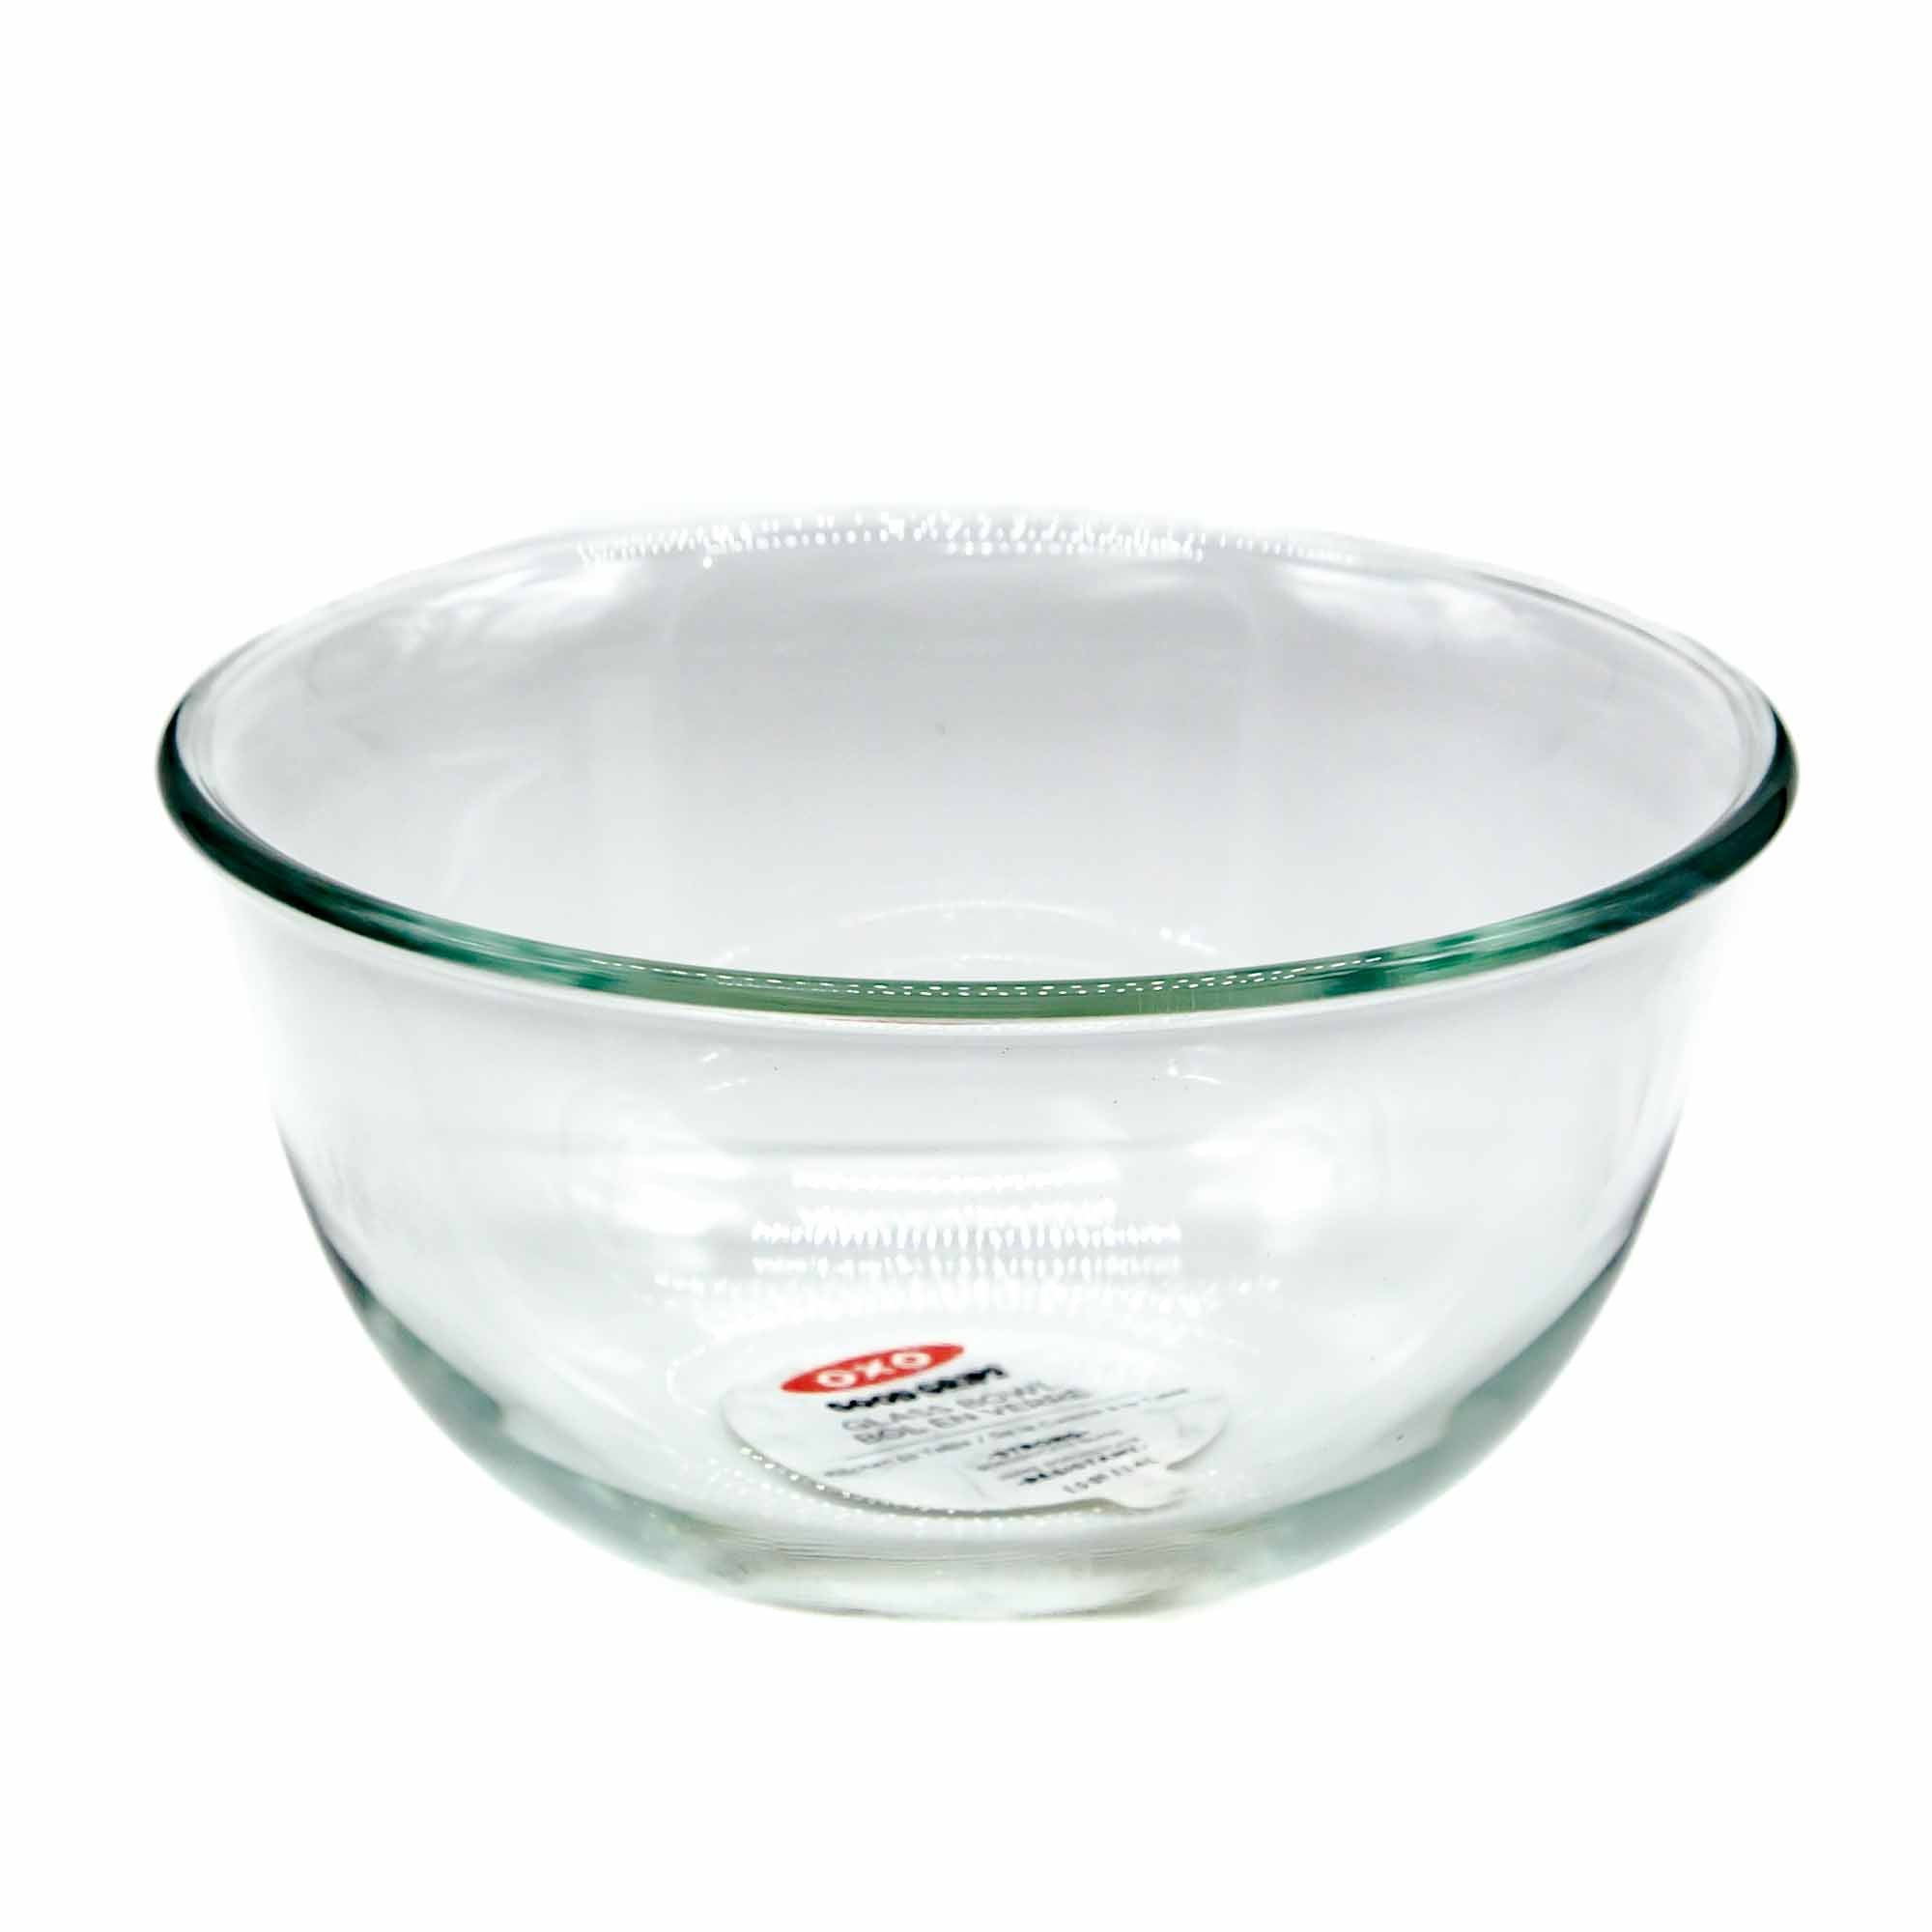 OXO Good Grips 1.5QT Bowl - Mortise And Tenon